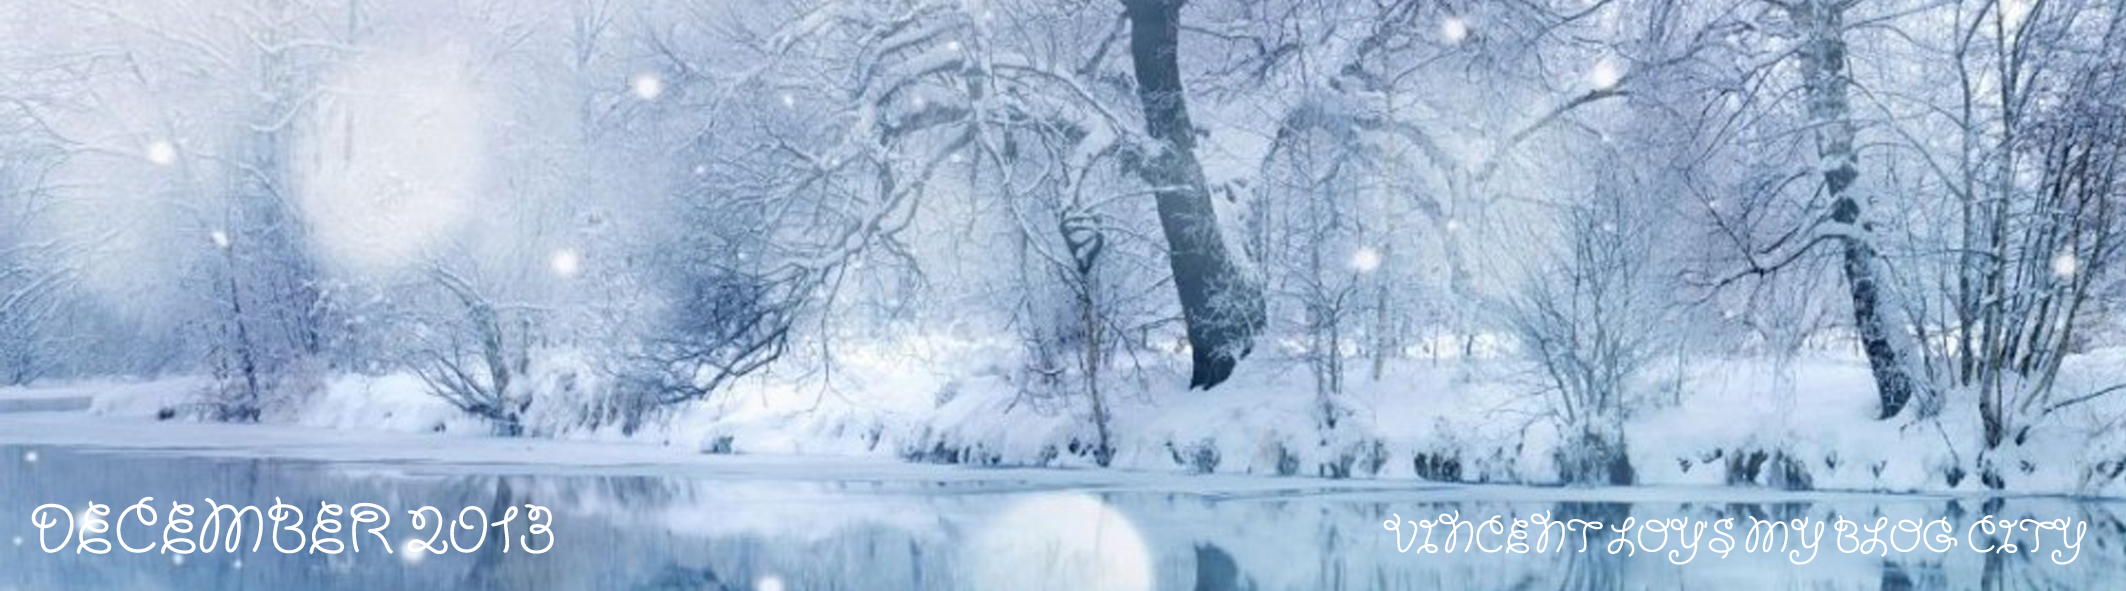 Download Wallpaper Home Screen Winter - december-2013-blog-header  Photograph_801690.jpg